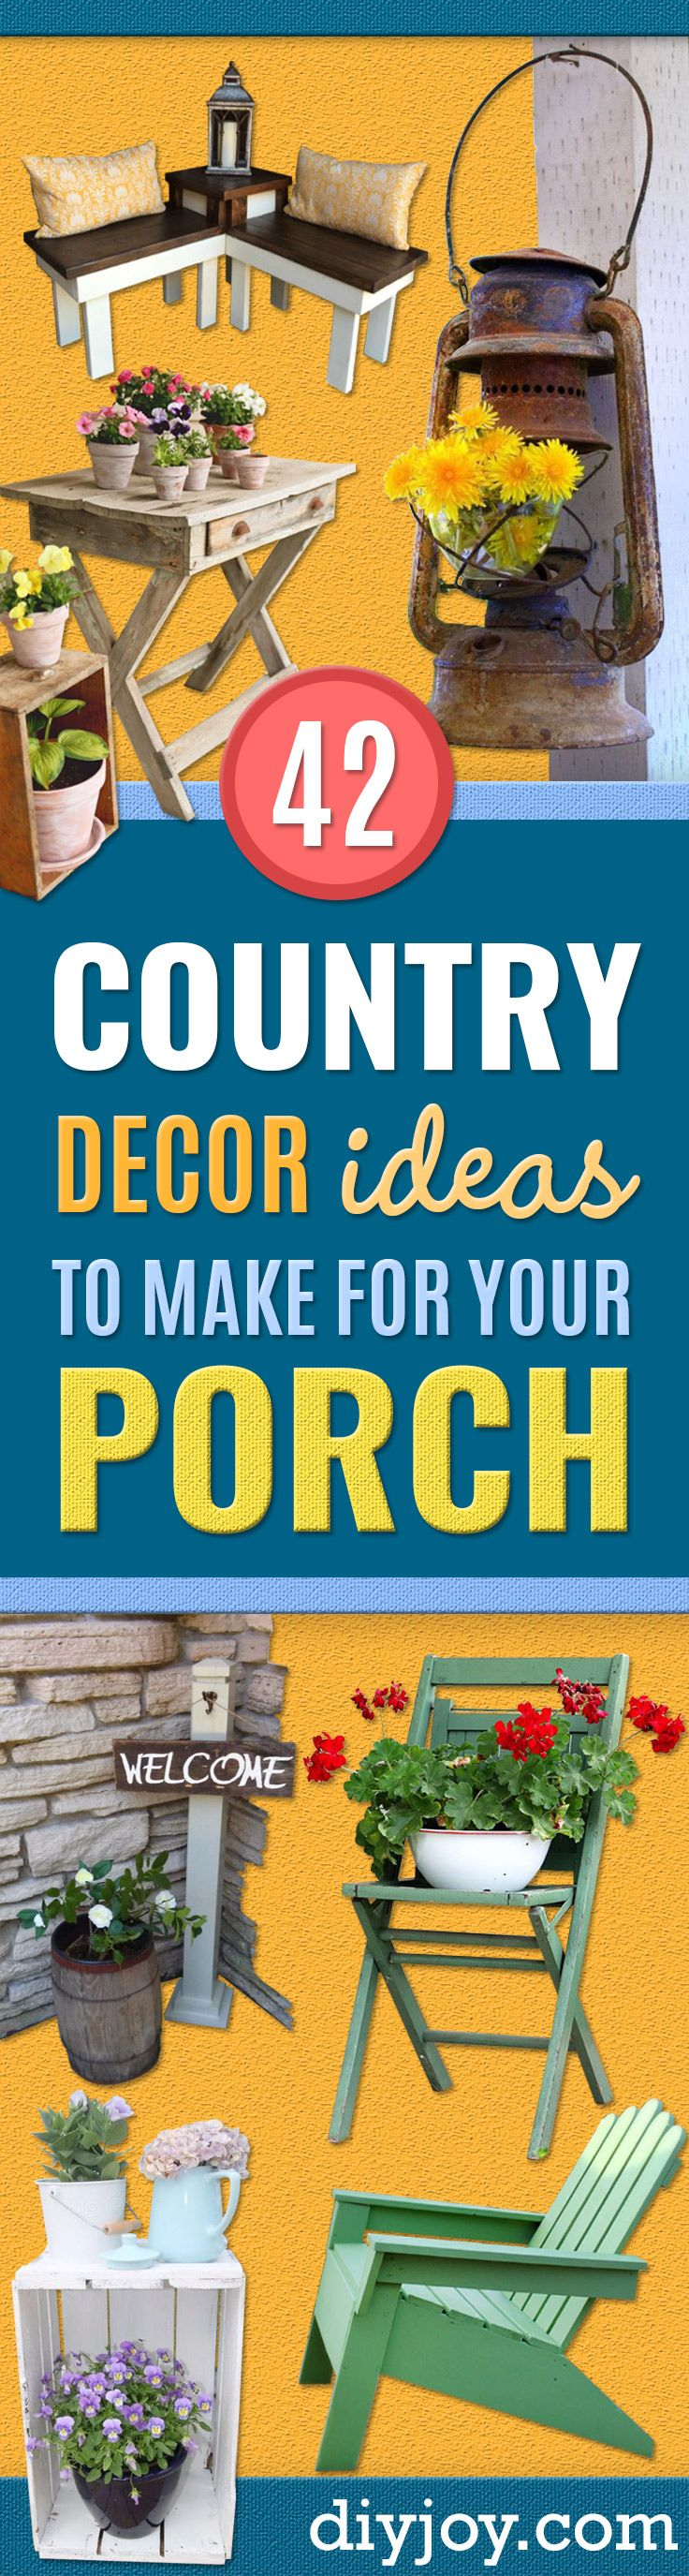 Best Country Decor Ideas for Your Porch - Rustic Farmhouse Decor Tutorials and Easy Vintage Shabby Chic Home Decor for Kitchen, Living Room and Bathroom - Creative Country Crafts, Furniture, Patio Decor and Rustic Wall Art and Accessories to Make and Sell http://diyjoy.com/country-decor-ideas-porchs